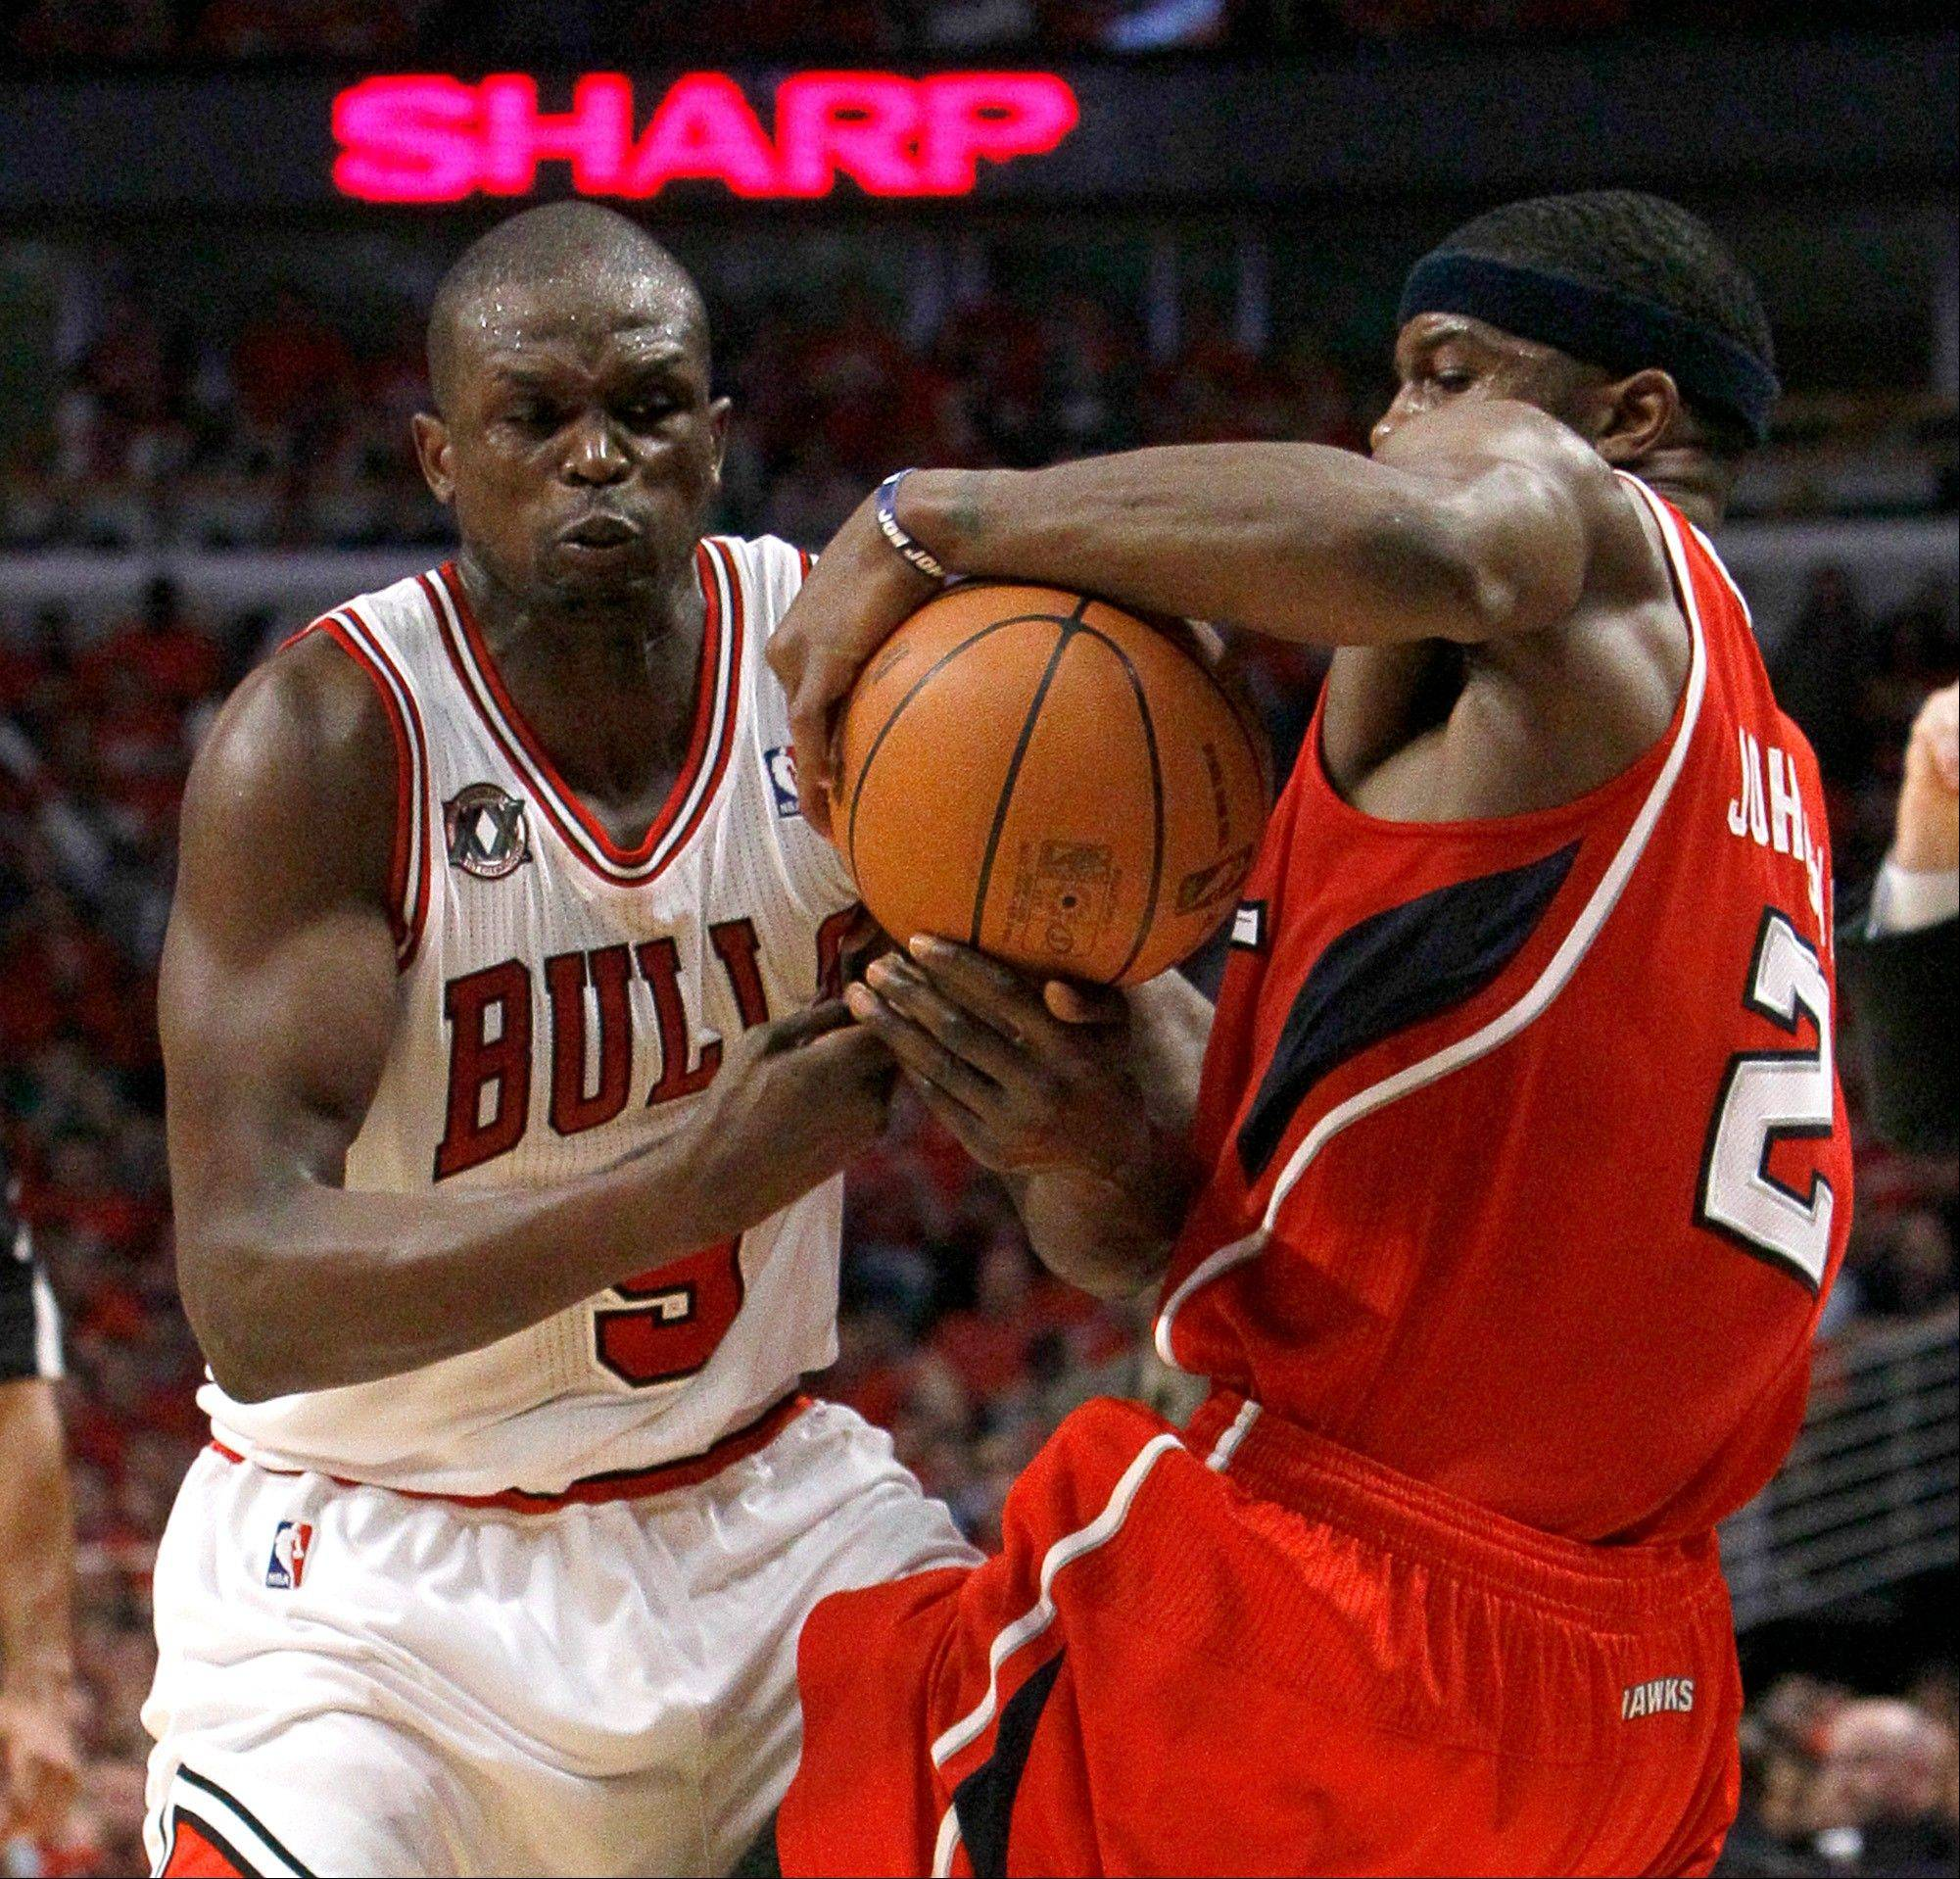 Chicago Bulls forward Luol Deng, left, strips Atlanta Hawks guard Joe Johnson of the ball during the third quarter in Game 5 of a second-round NBA playoff basketball series Tuesday, May 10, 2011, in Chicago. The Bulls won 95-83, and lead the series 3-2.